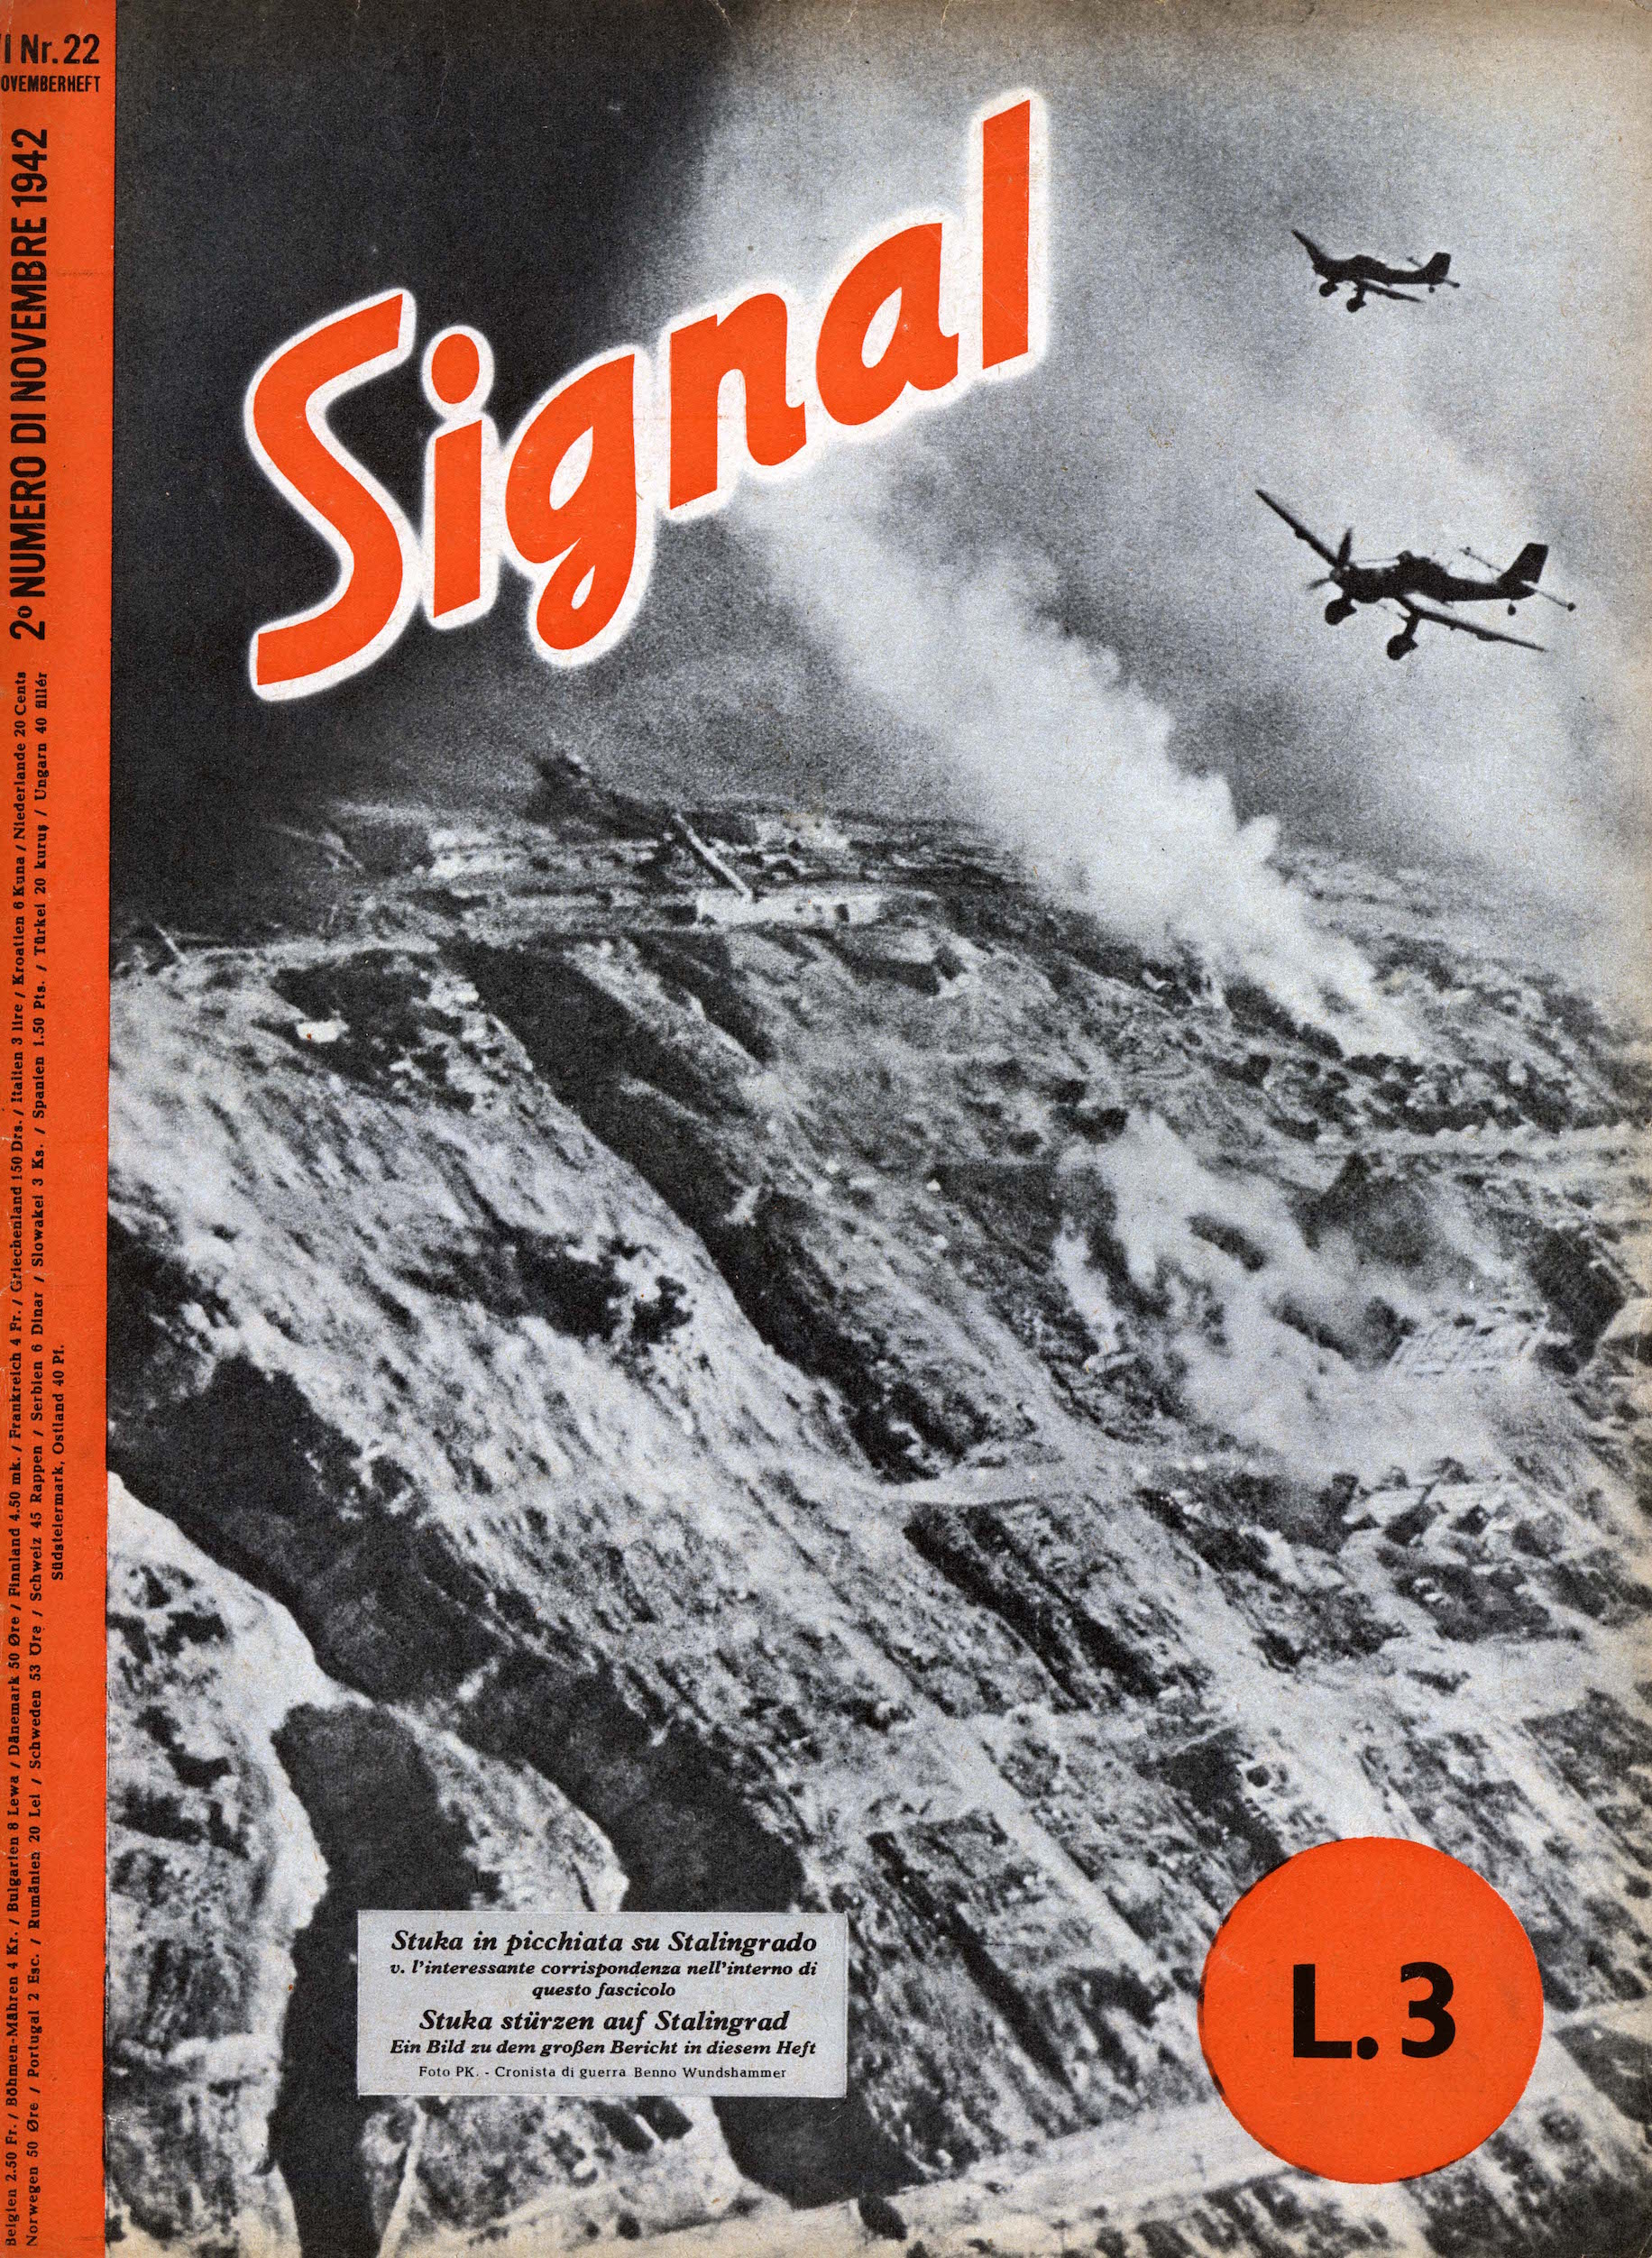 Cover of 'Signal,' a German propaganda magazine printed in Nazi Germany from 1940 to 1945, with the aim to distribute it in neutral countries and in those that the Third Reich had already occupied, or was about to occupy. Italian-German bilingual edition issue, Deutscher Verlag, Germany, Berlin, Nov. 11, 1942.